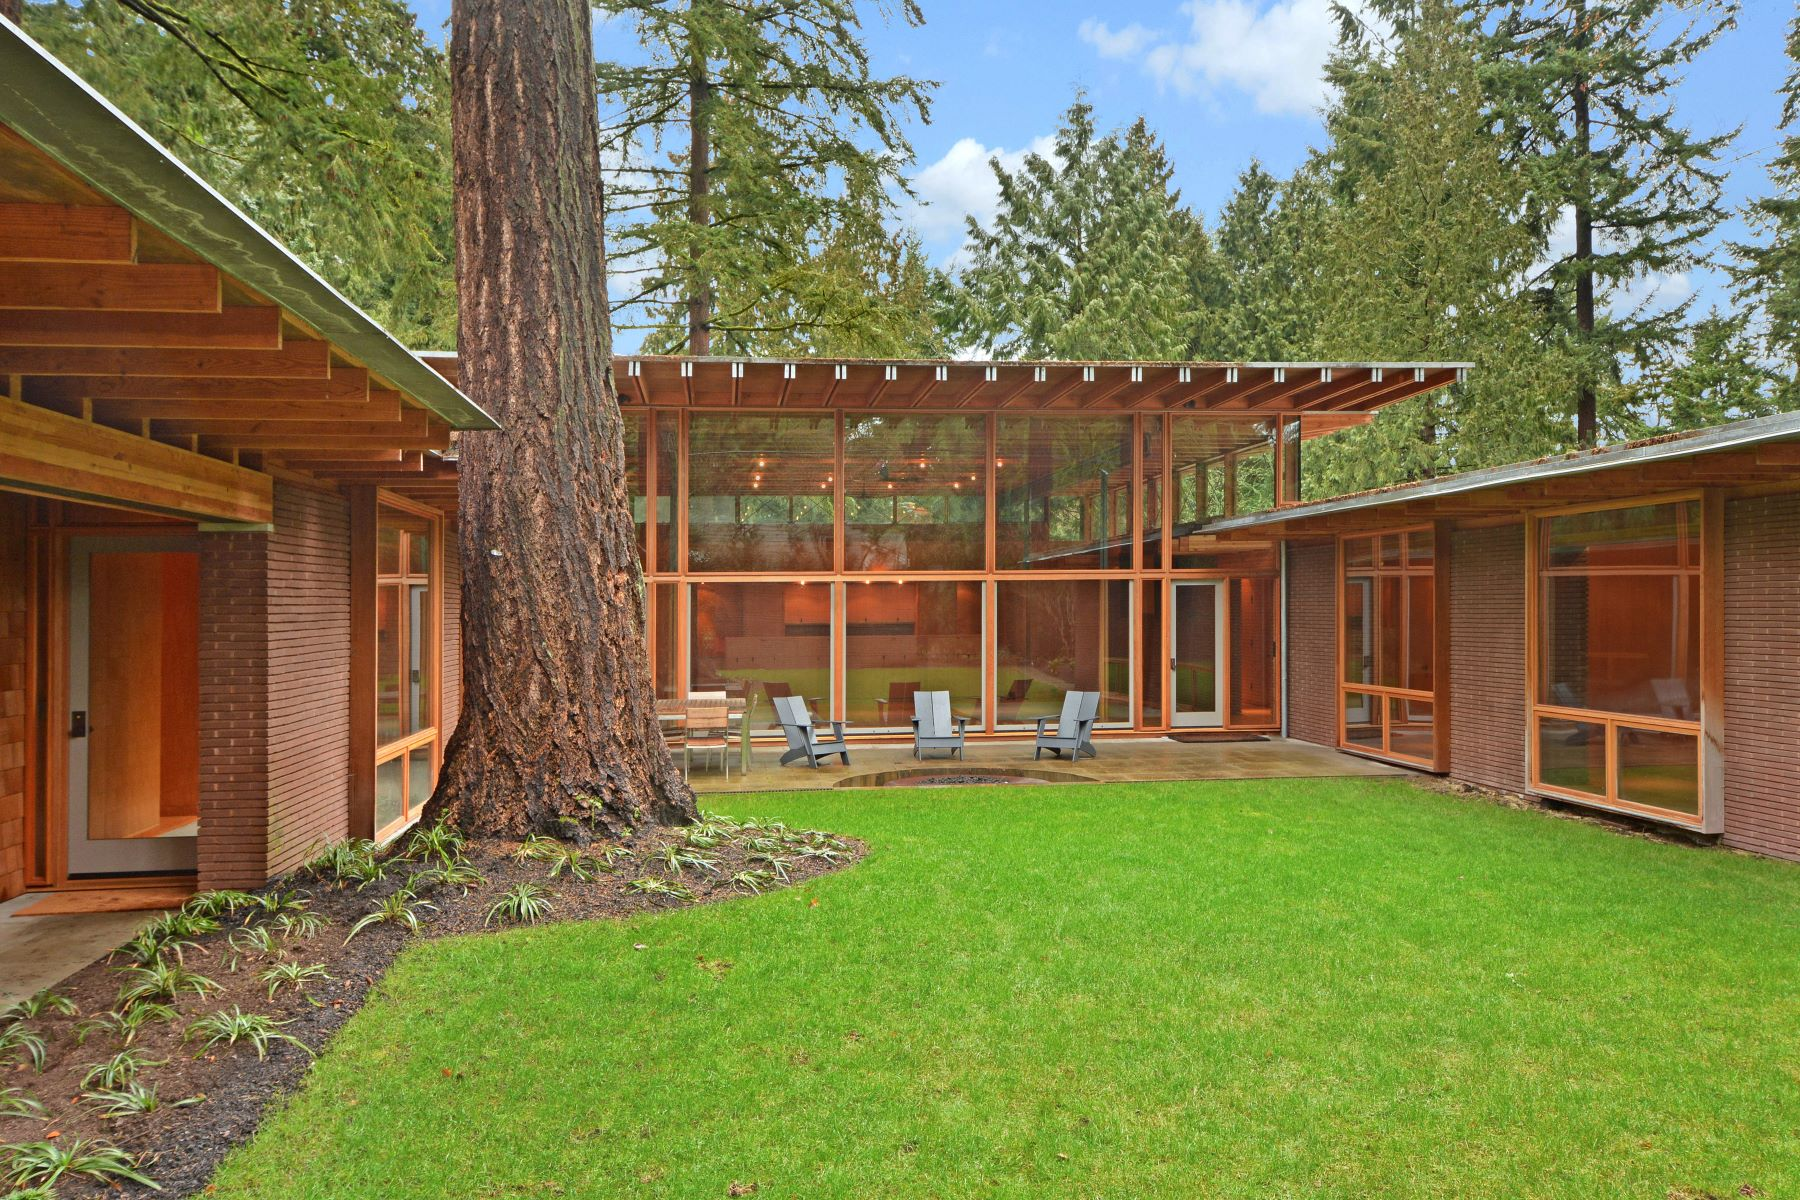 Single Family Home for Rent at Beaux Arts Village Courtyard 2737 107th Ave SE Beaux Arts, Washington 98004 United States